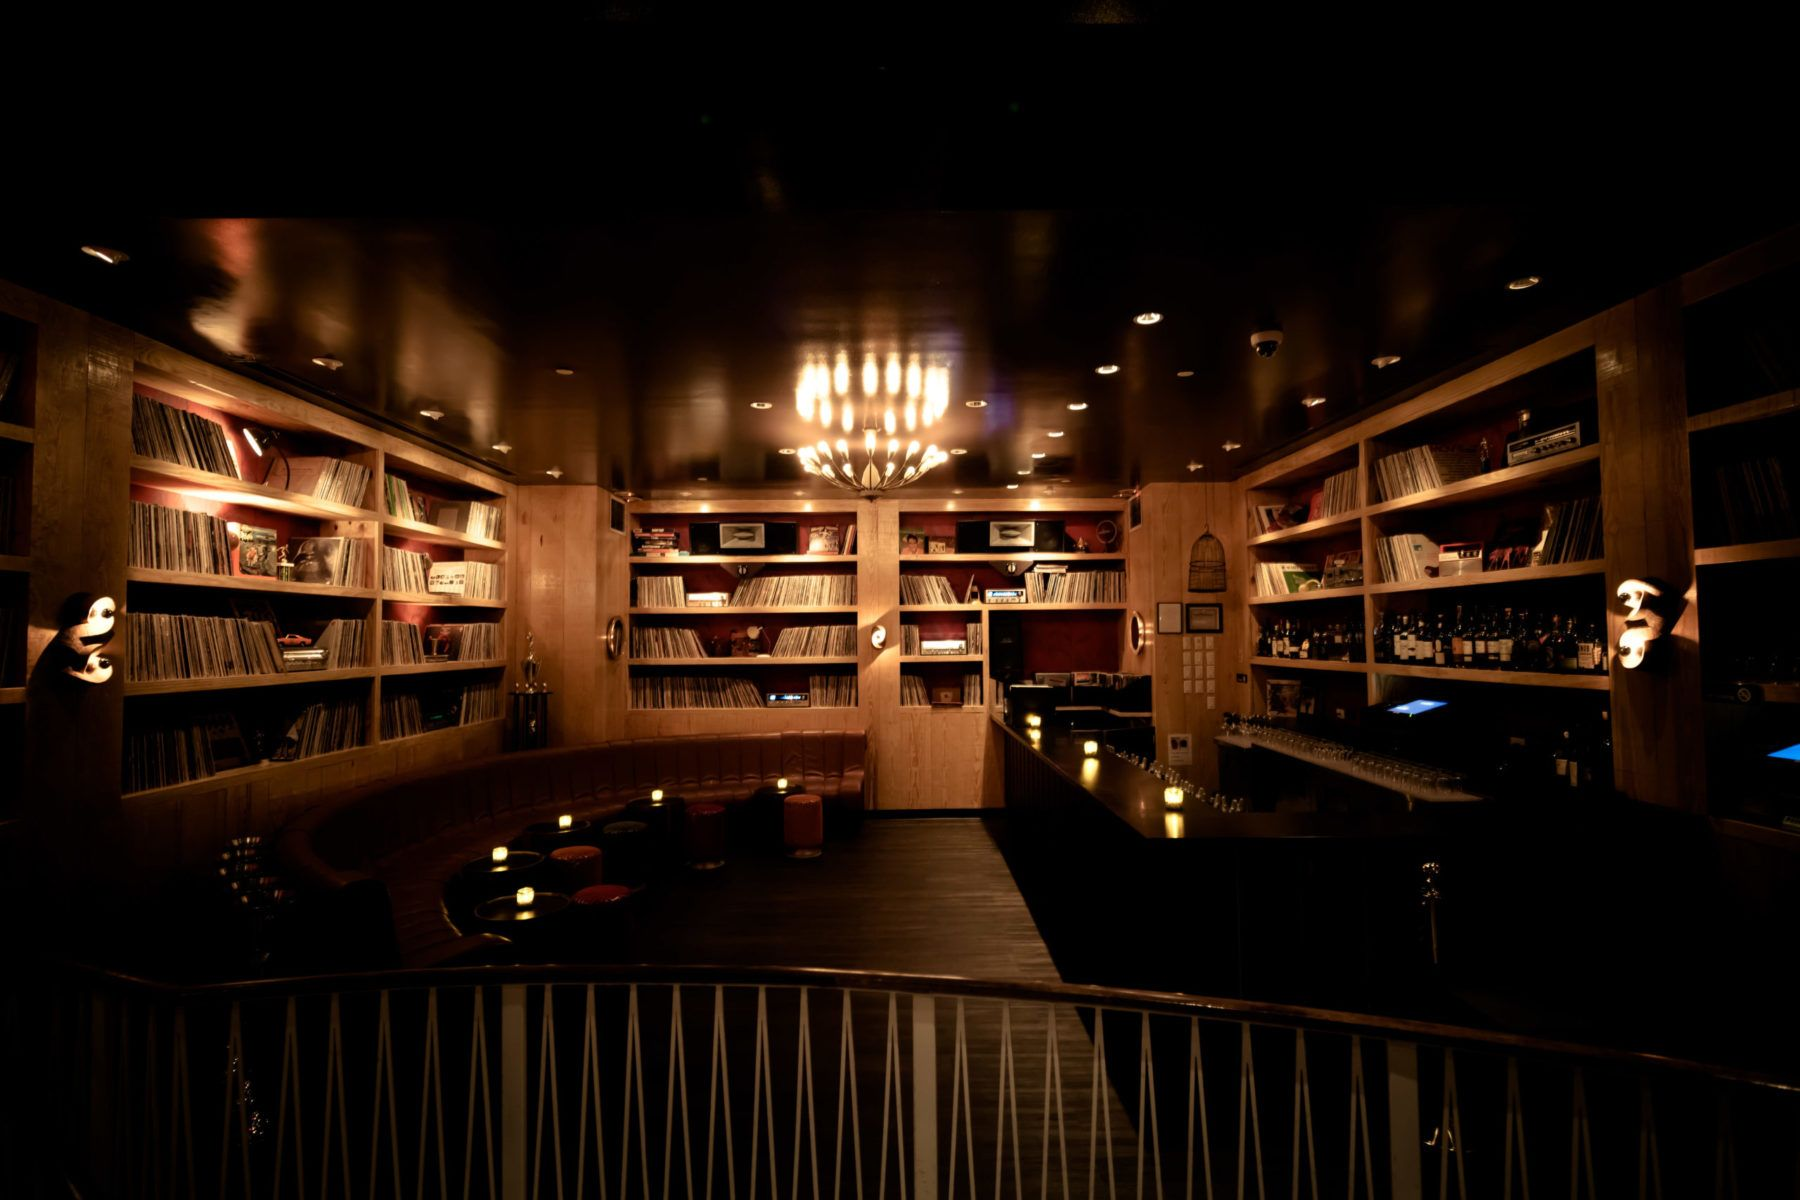 Interior of the Rec Room NYC